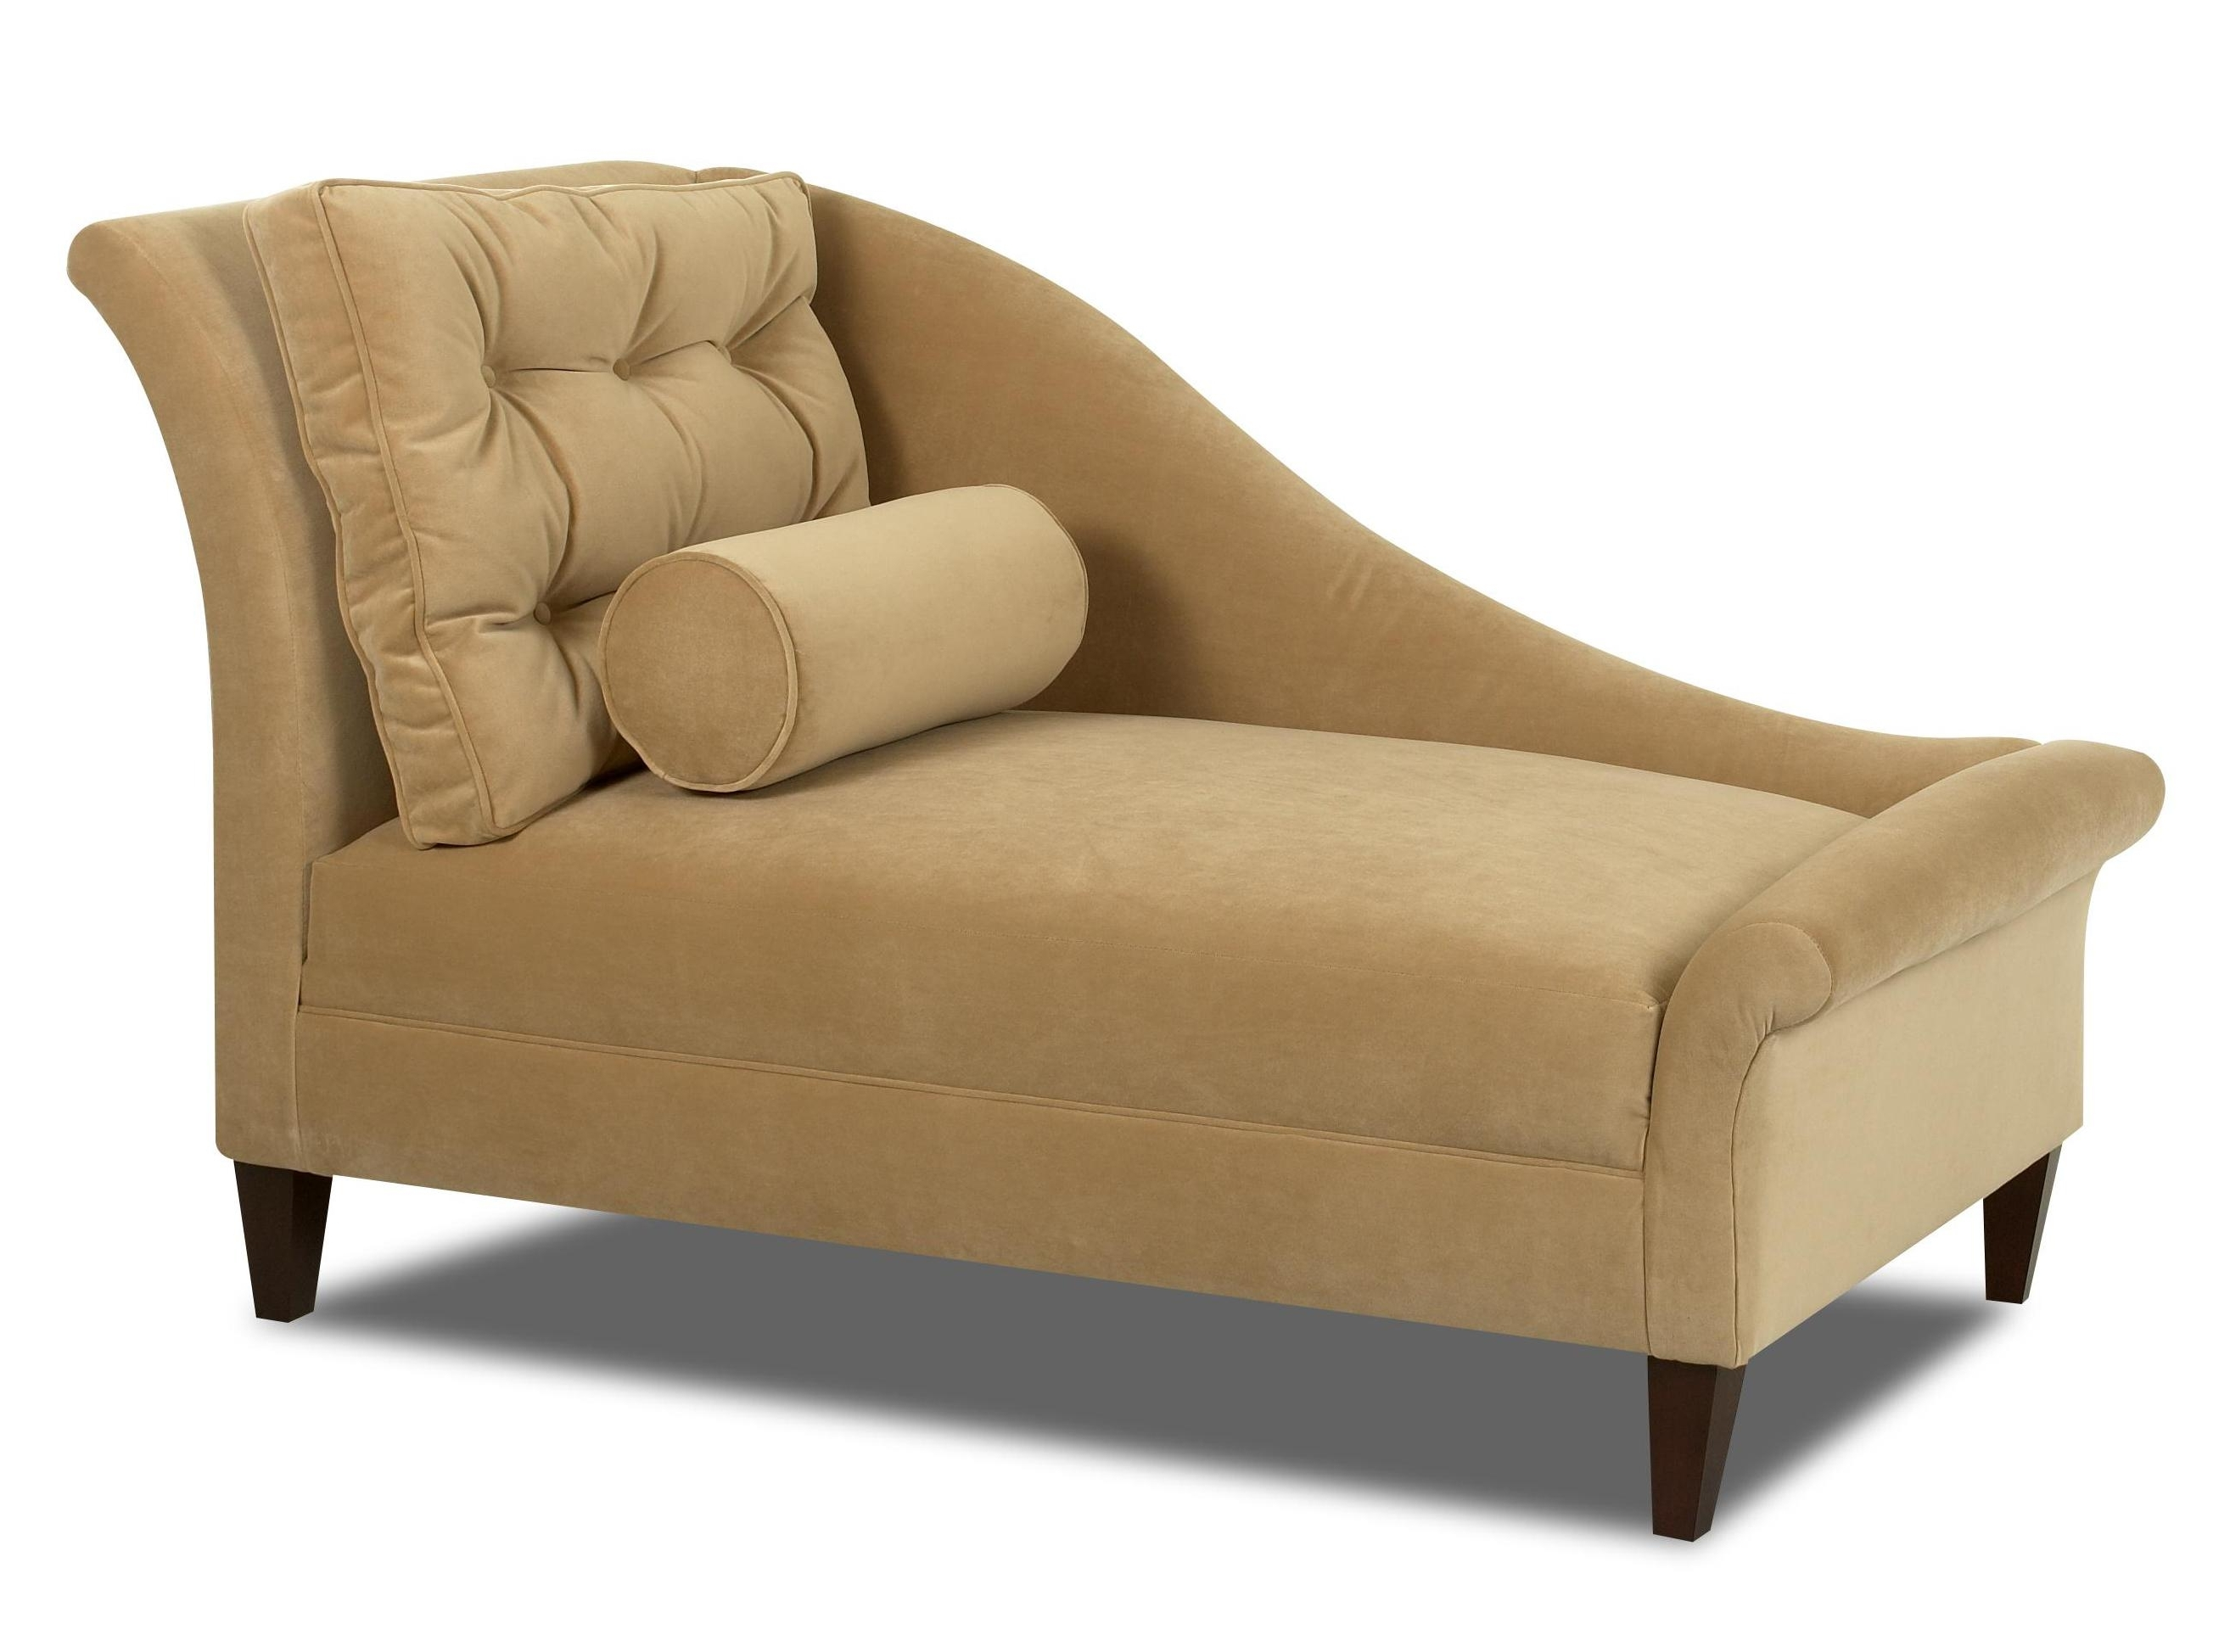 Convertible Chair : Living Room Lounge Chair Sitting Chairs Lounge In Most Popular Chaise Lounge Chairs With Two Arms (View 5 of 15)